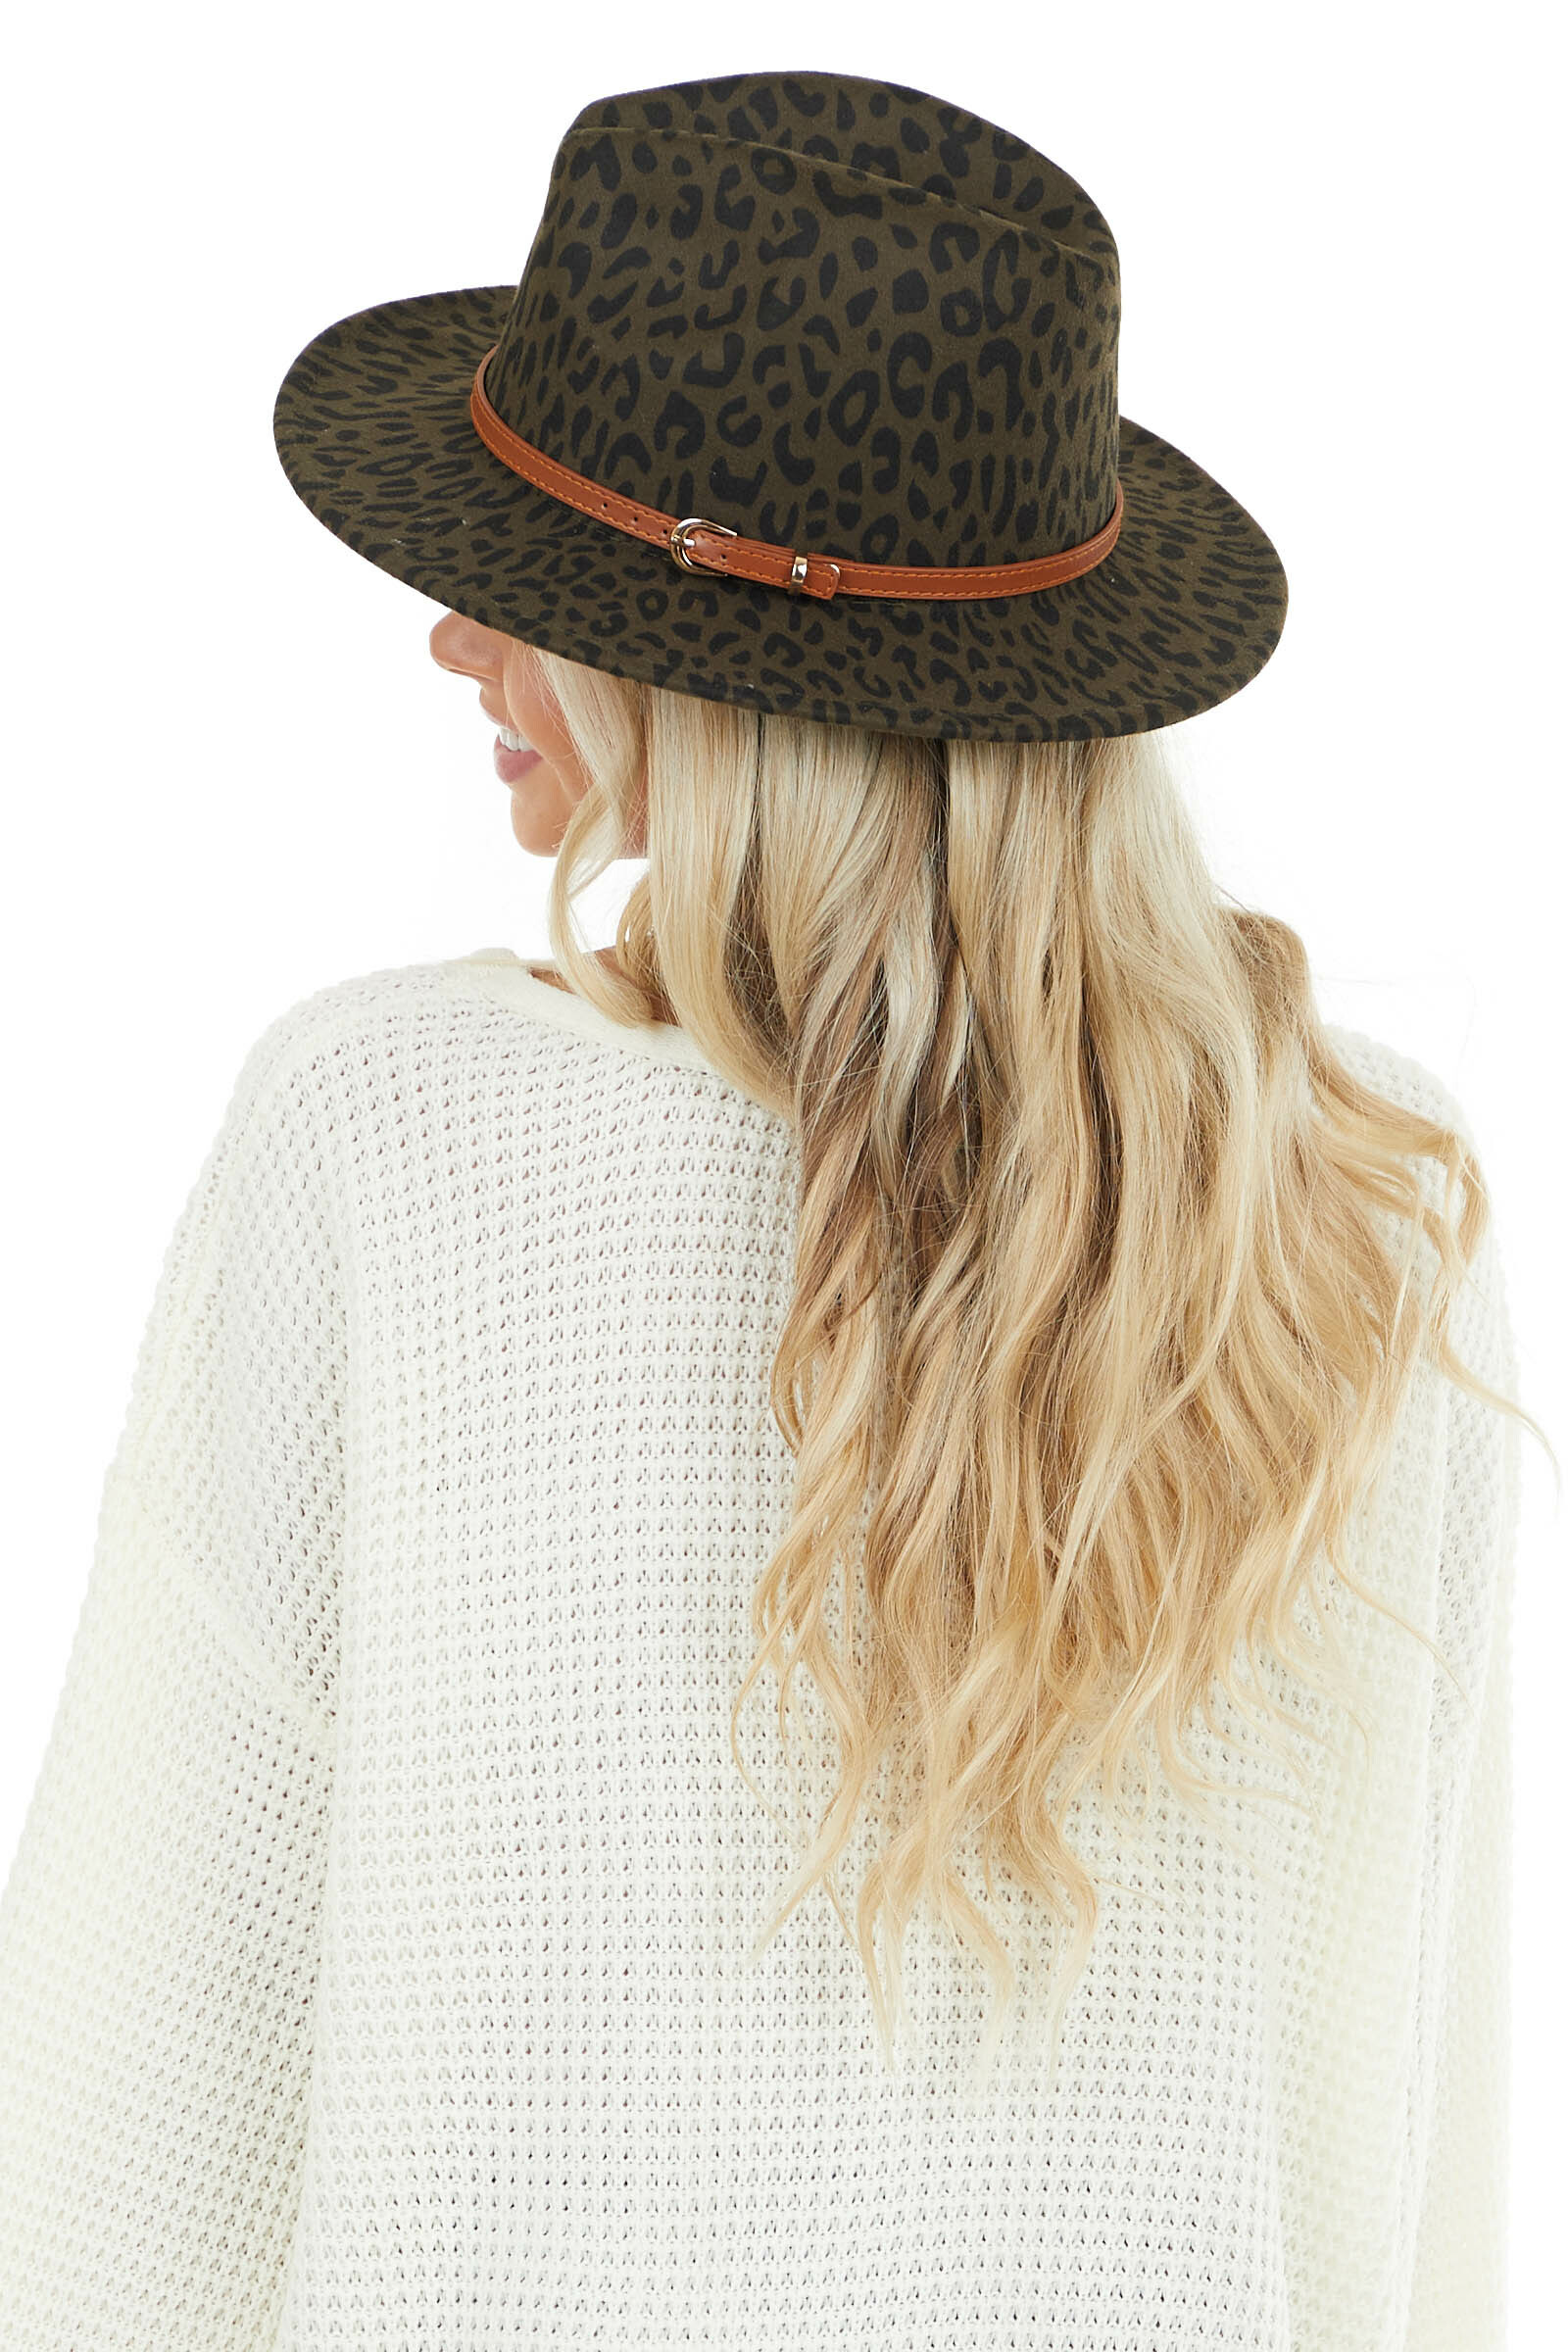 Hunter Green Leopard Print Panama Hat with Brown Belt Detail